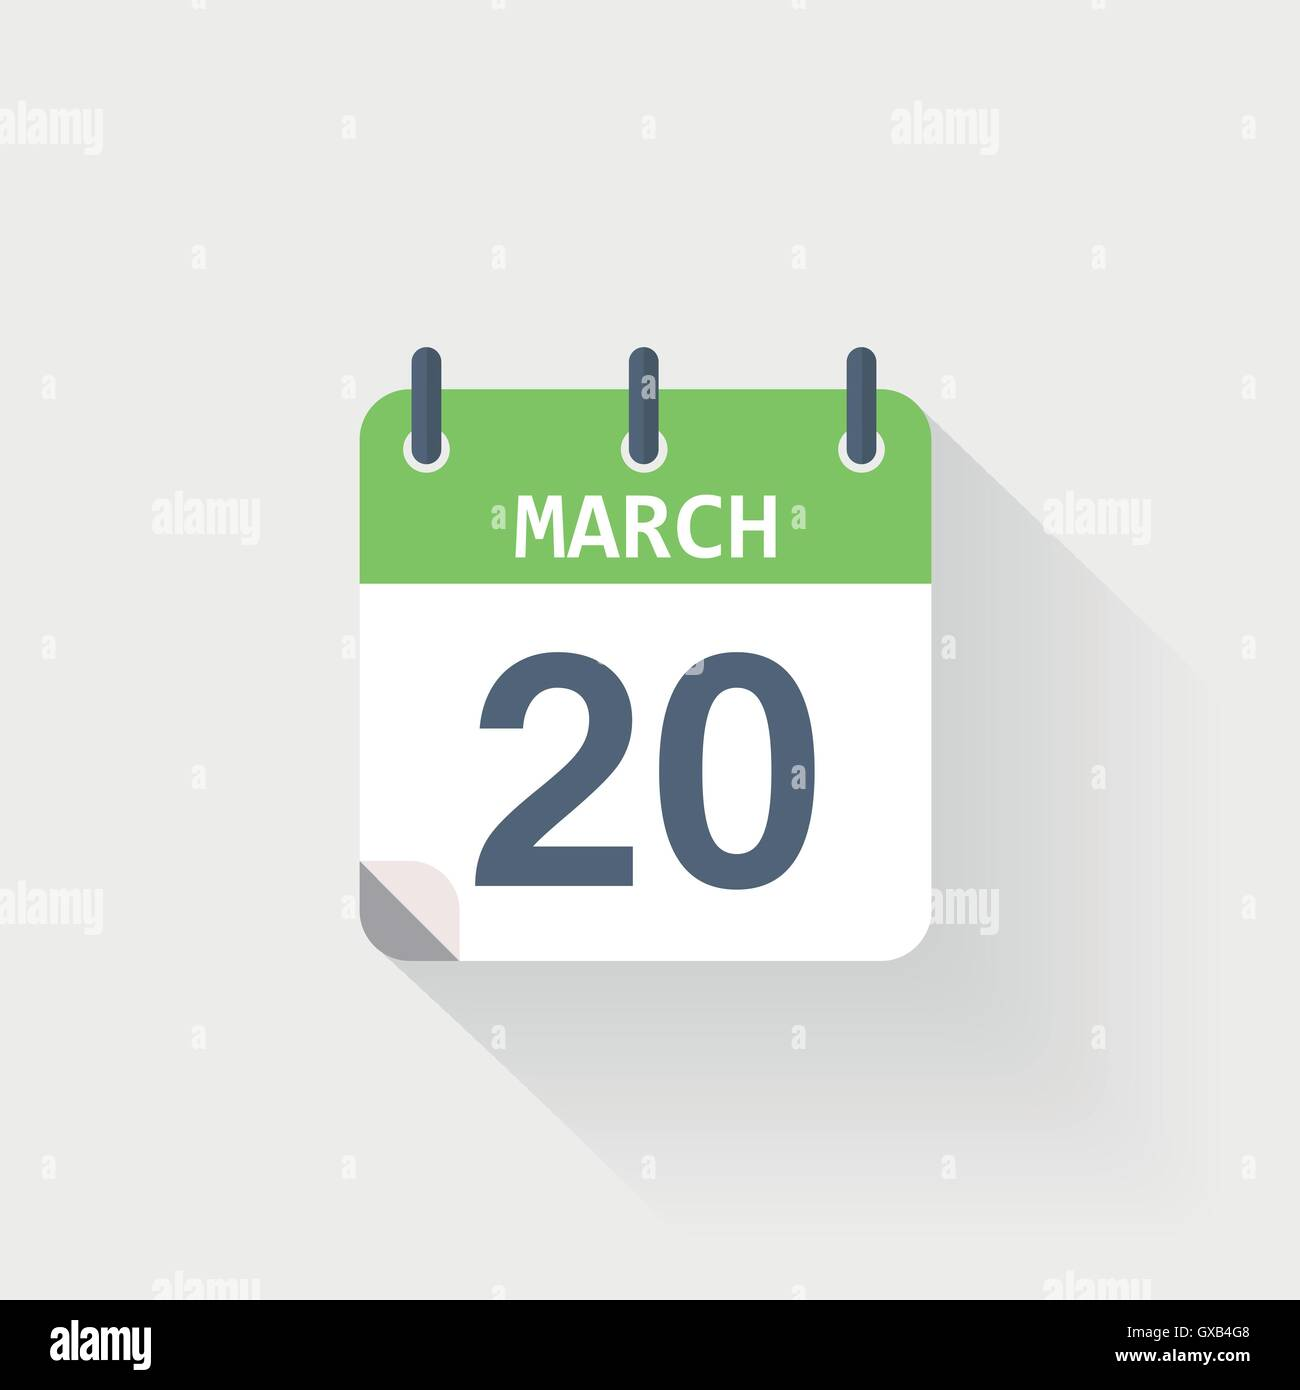 20 march calendar icon on grey background - Stock Vector